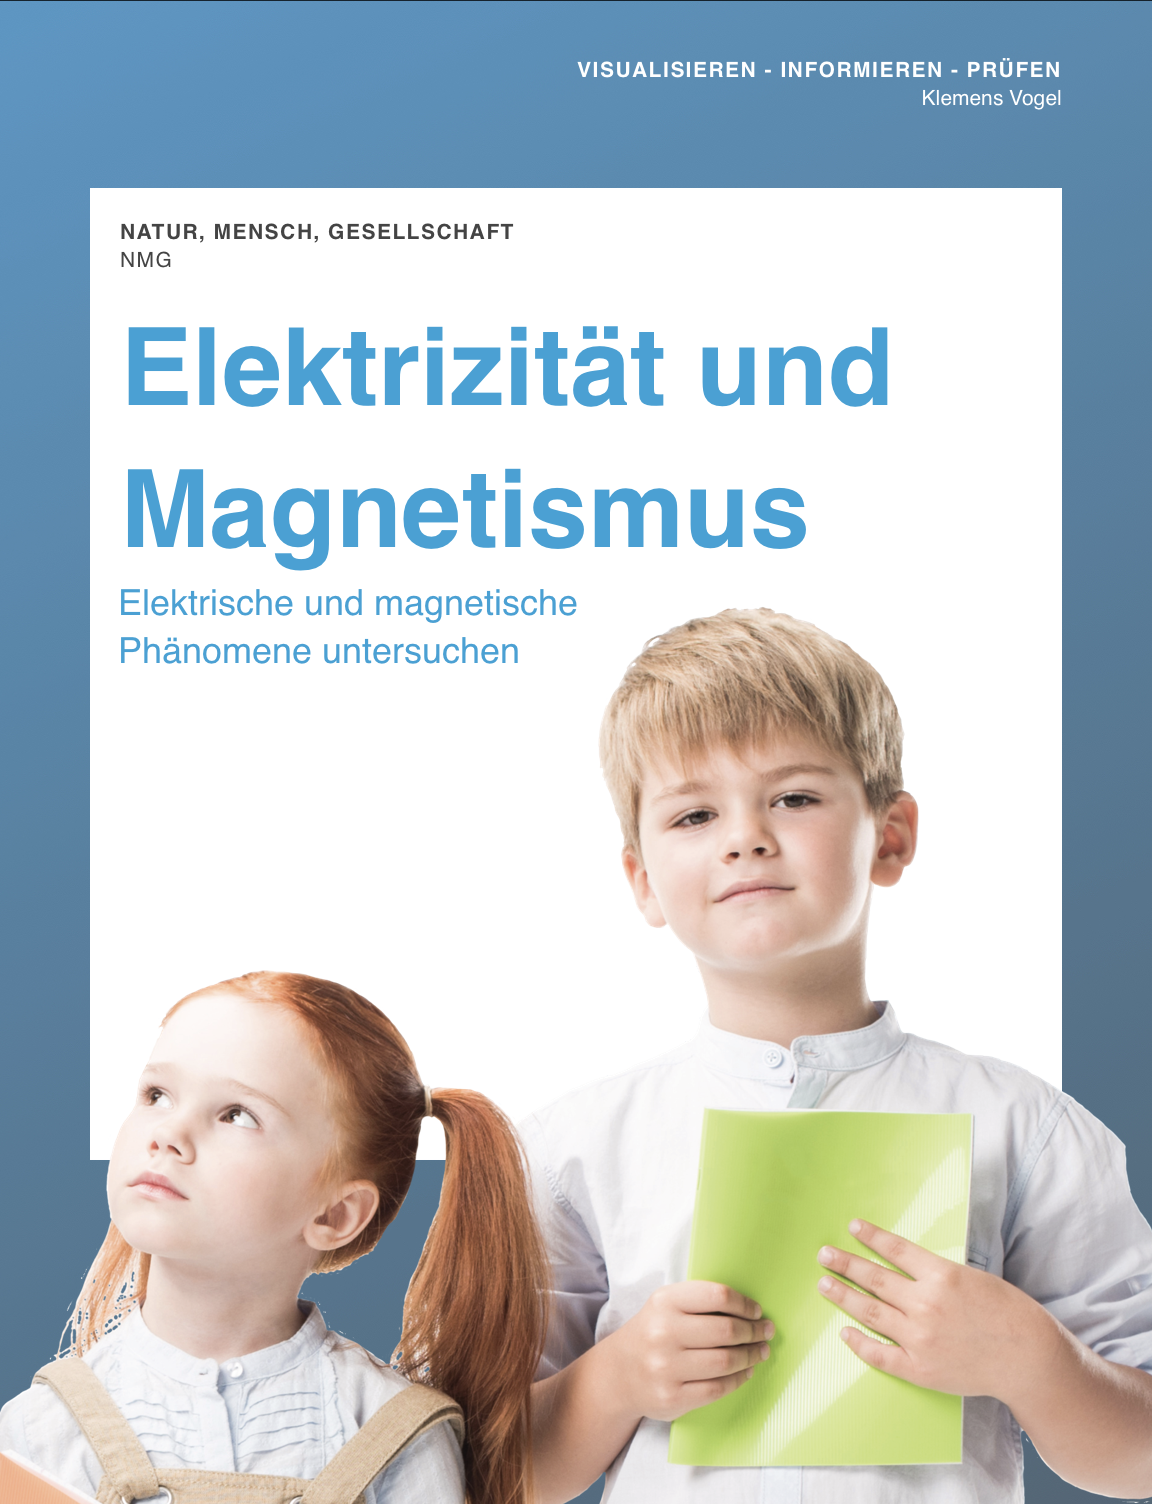 Preview image for LOM object Elektrizität und Magnetismus - Multitouch Buch